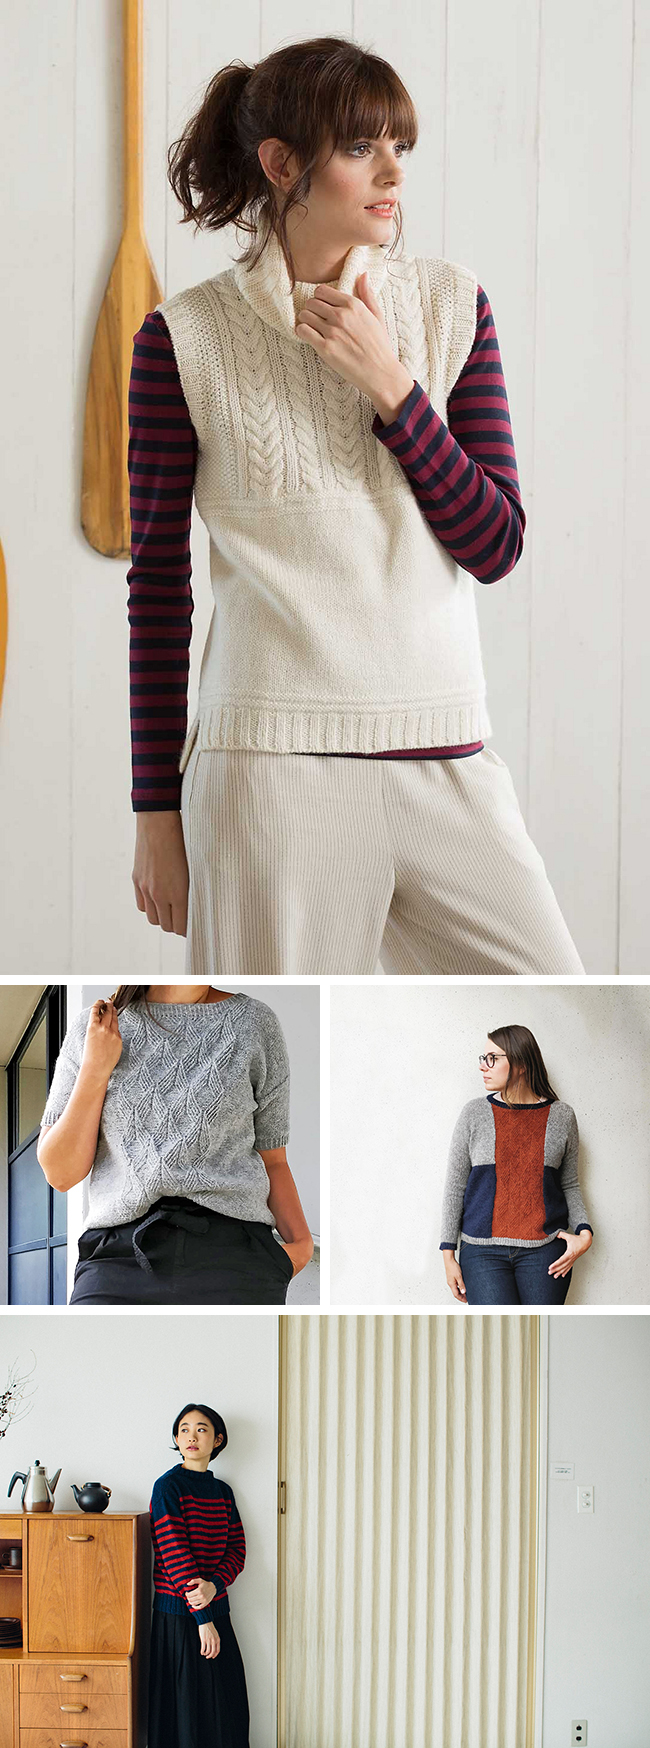 New Favorites: Way back to school sweaters